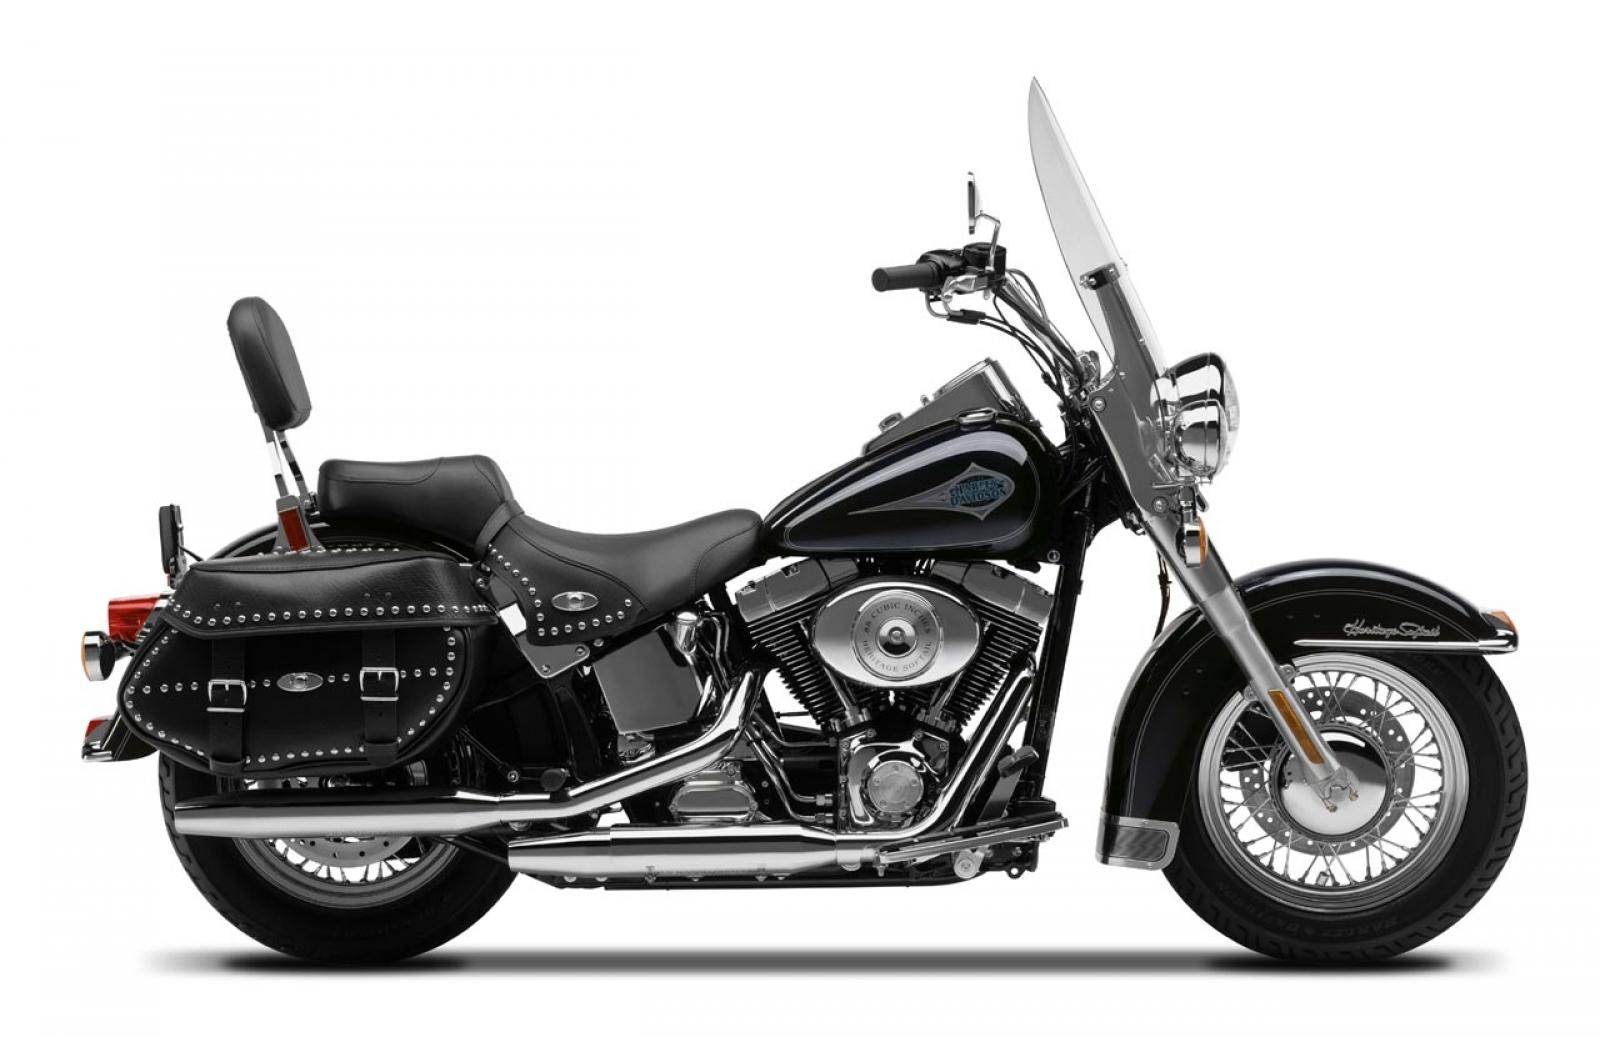 2001 Harley-Davidson Heritage Softail Classic Injection #1